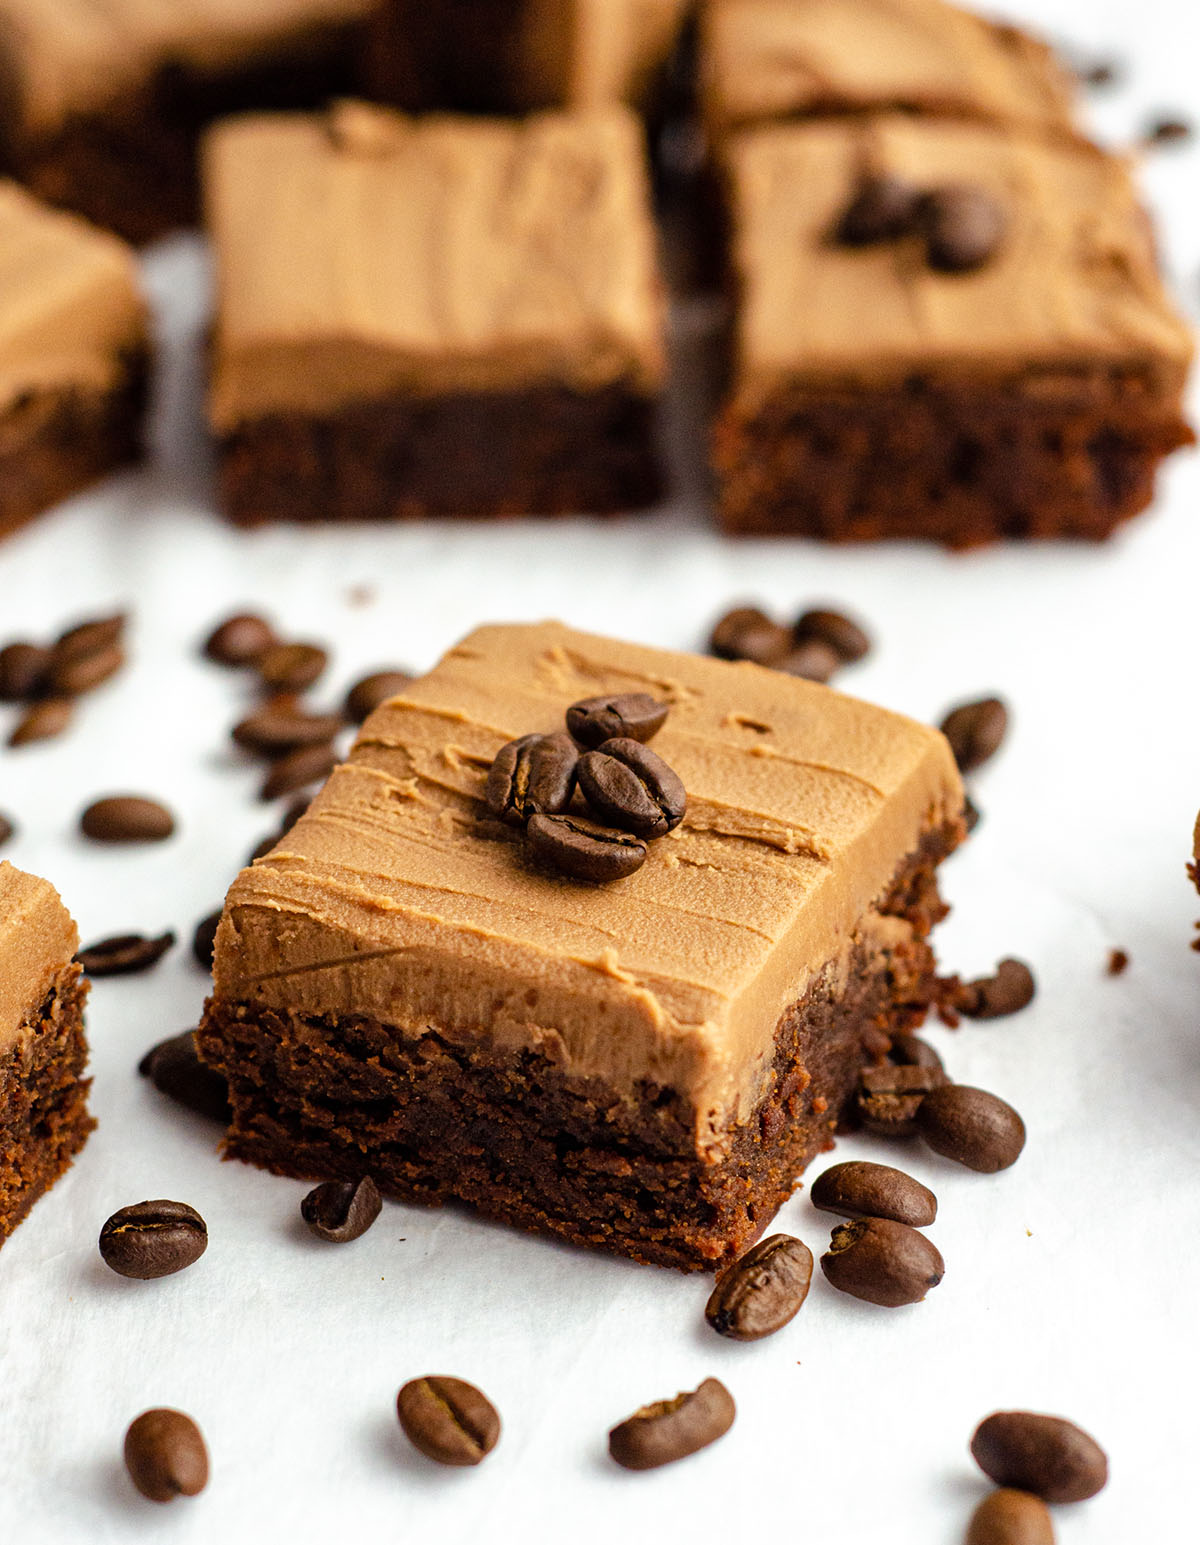 coffee brownie with mocha frosting and coffee beans on top of it for garnish